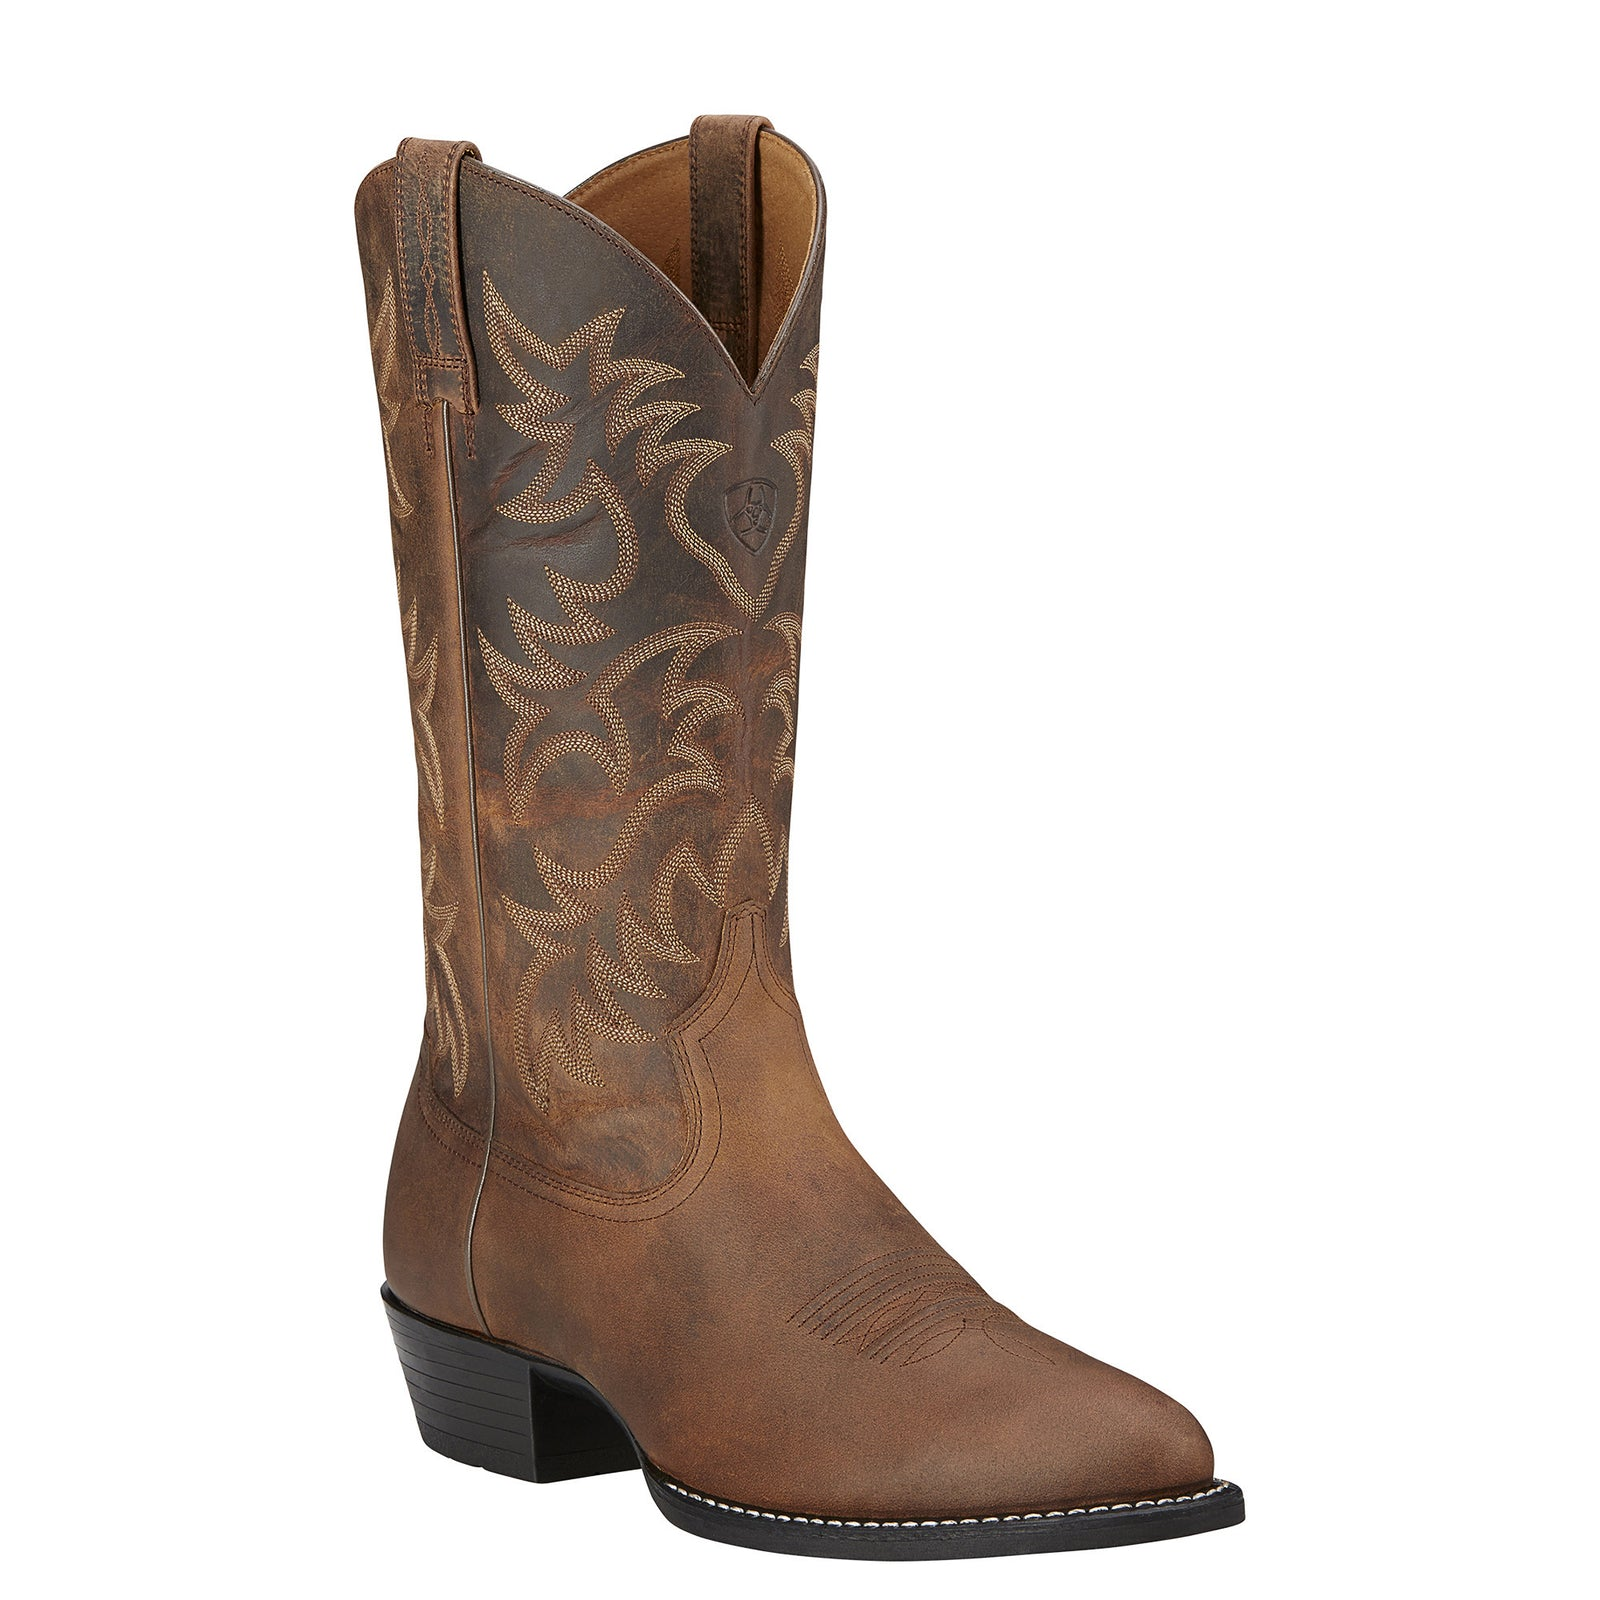 Ariat Men's Heritage R Toe Distressed Brown Western Boots - VaqueroBoots.com - 1